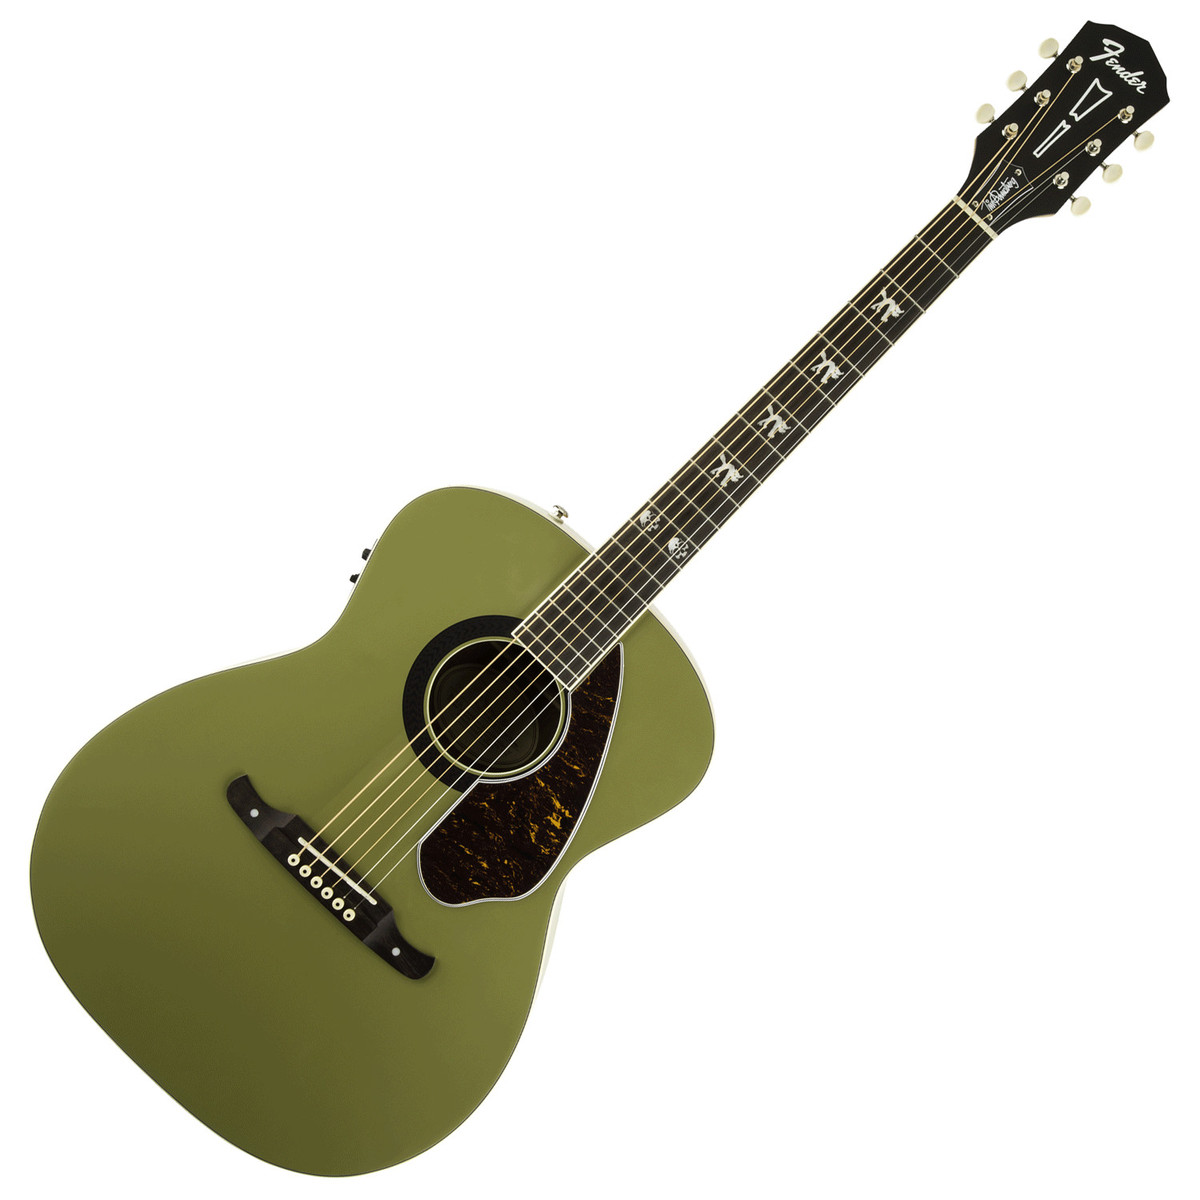 Disc Fender Tim Armstrong Hellcat Electro Acoustic Guitar Green At